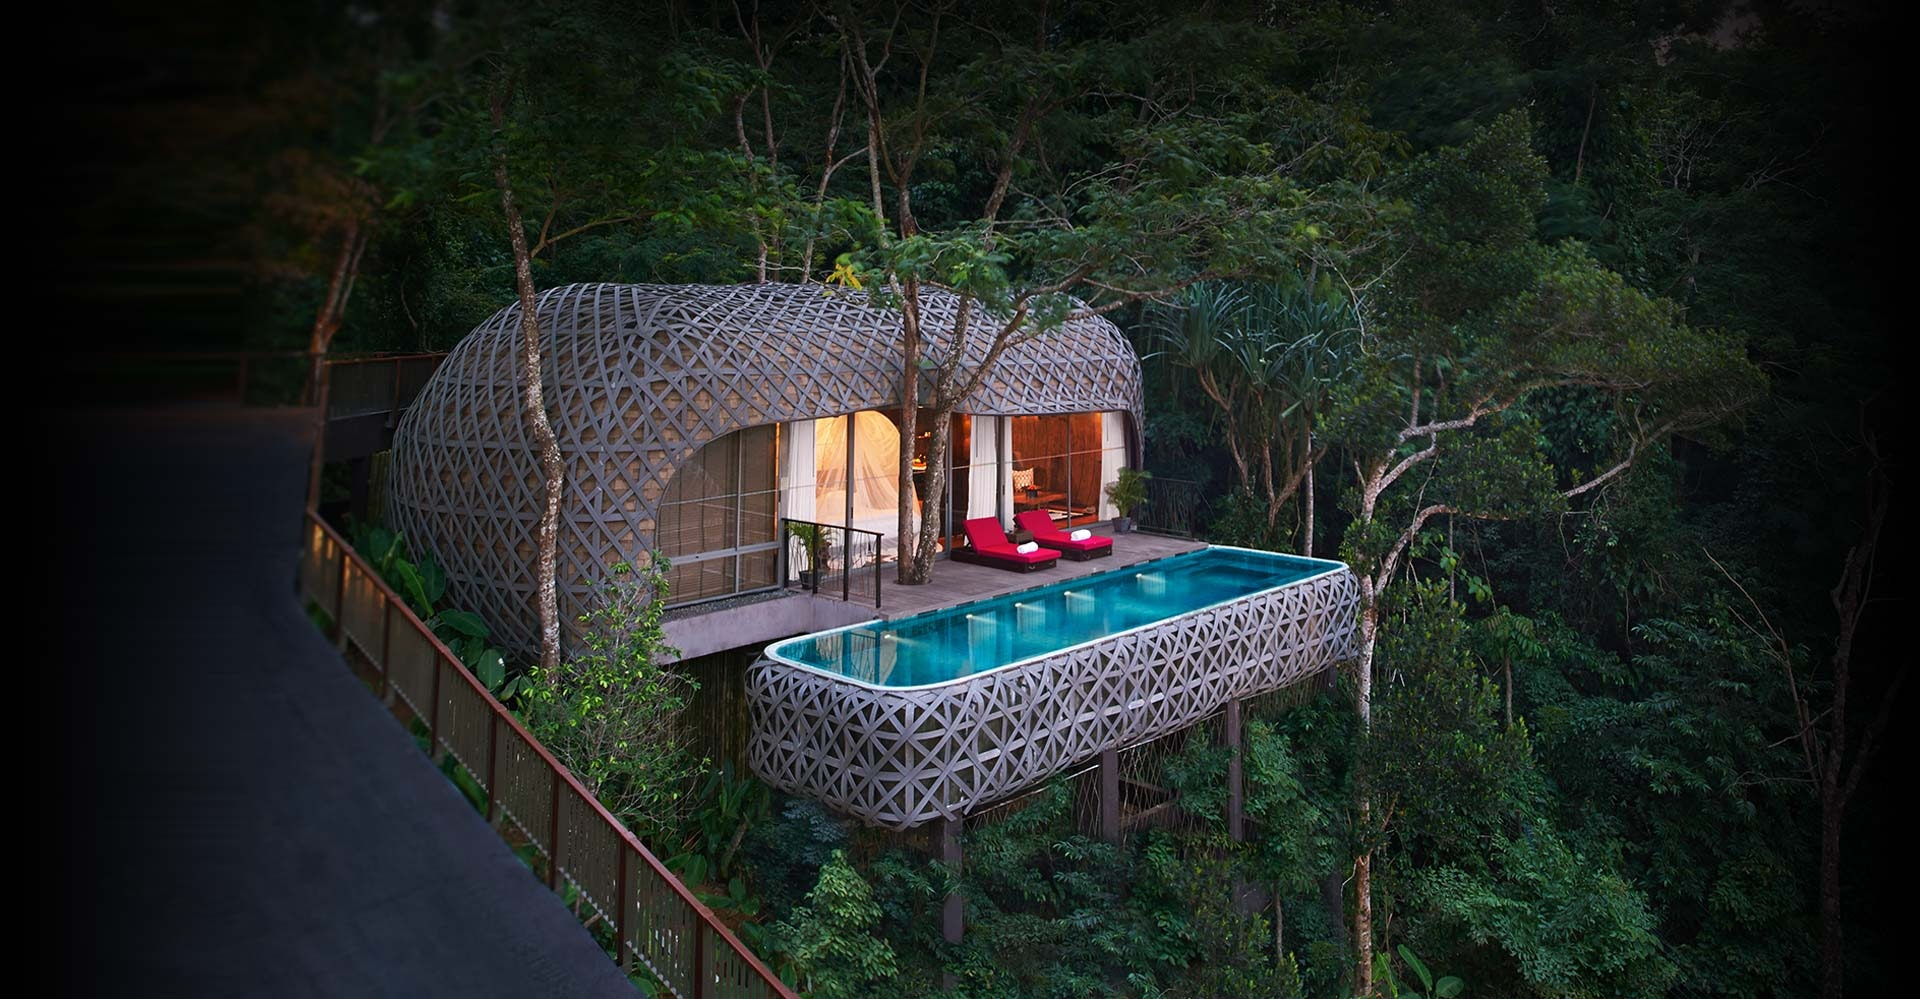 unusual places to stay and unique holiday accommodation coolstays rh coolstays com